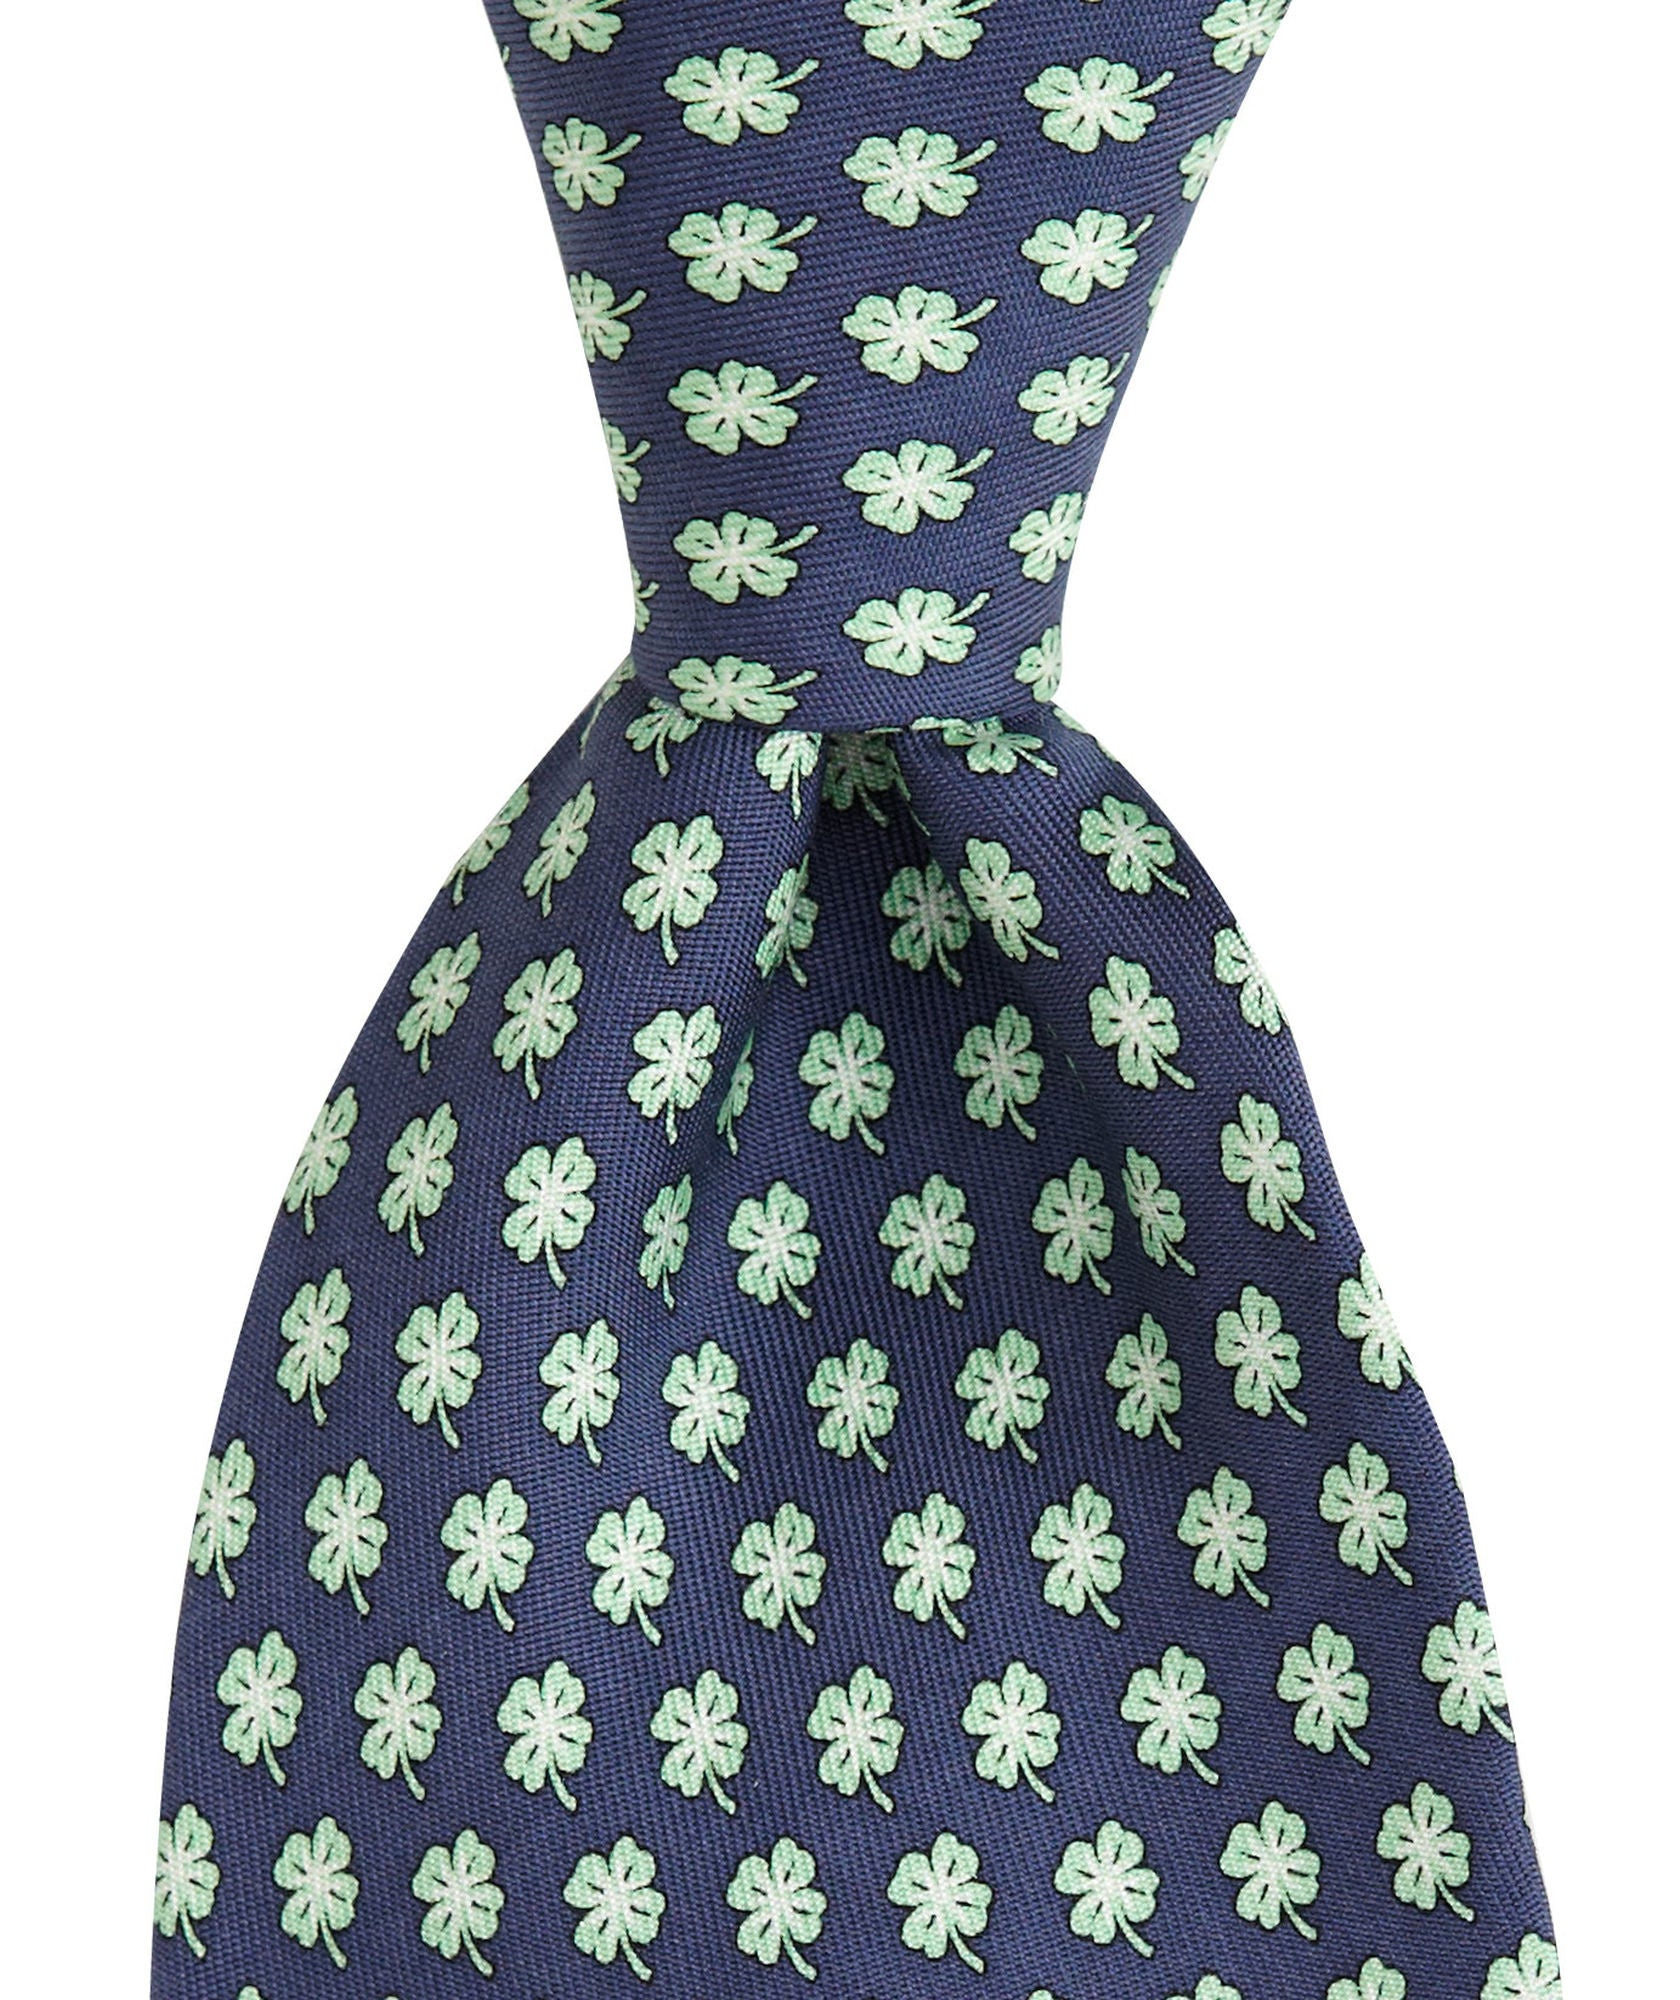 Front View Vineyard Vines Luck of the Irish Tie in Navy